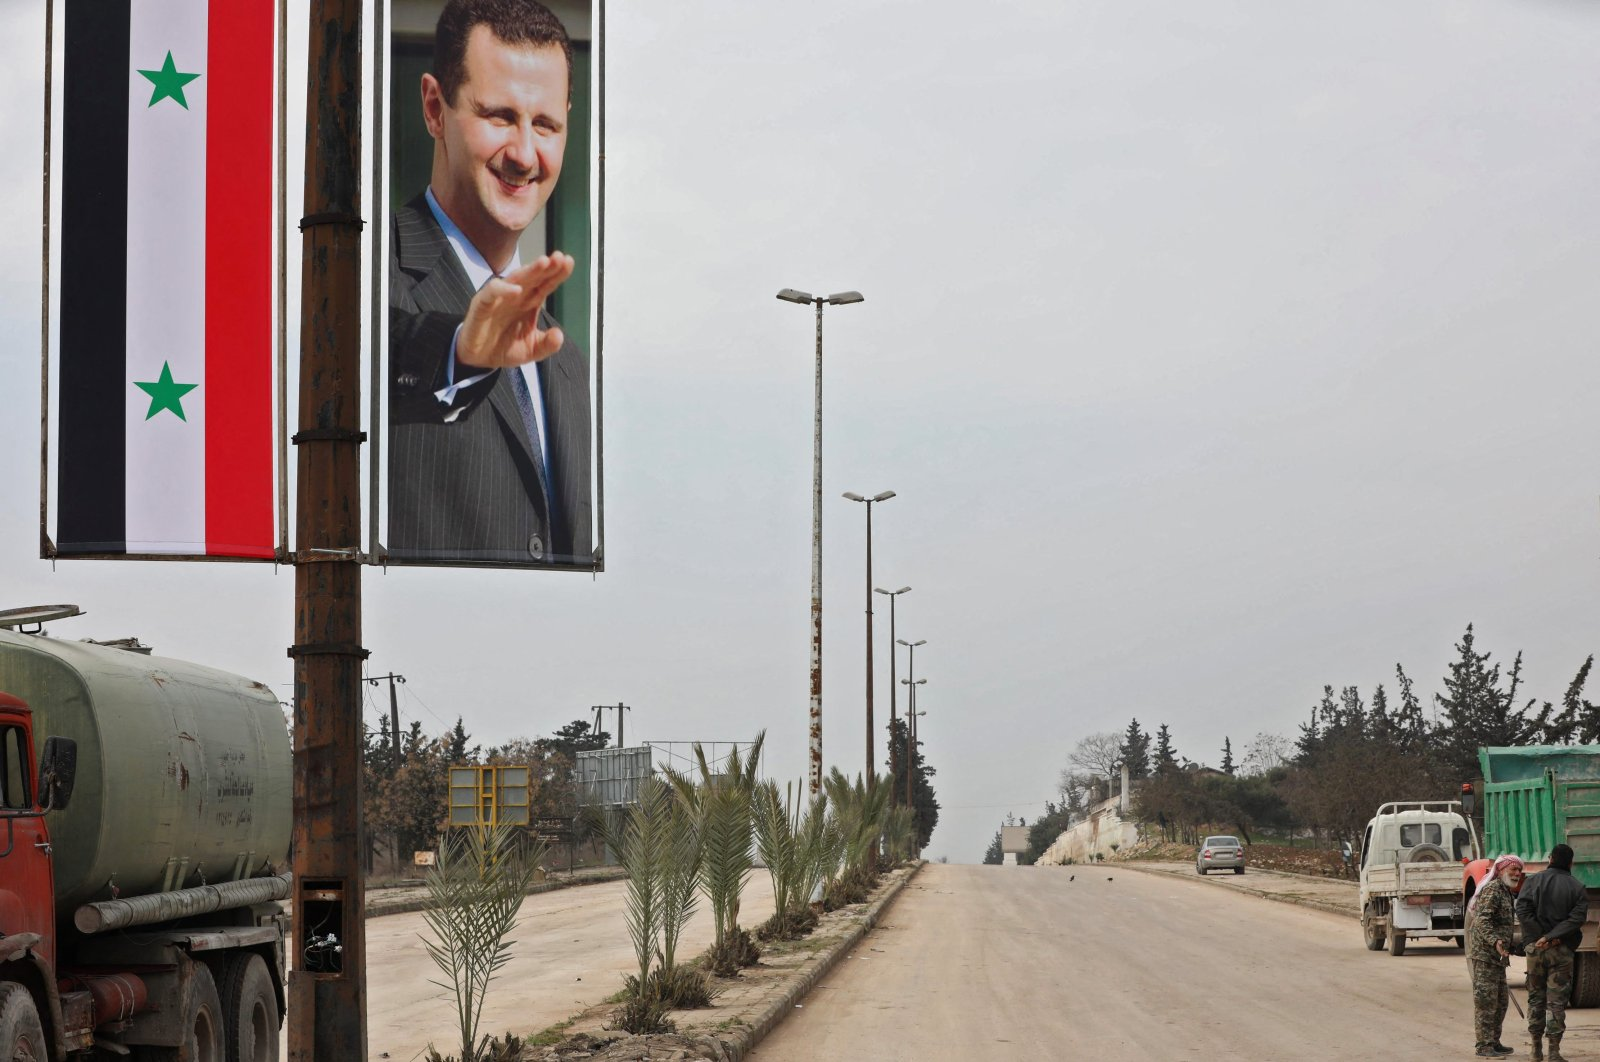 A poster of Syrian President Bashar al-Assad adorning the M5 highway connecting Aleppo to Damascus, Feb.18, 2020.  (Photo by LOUAI BESHARA / AFP)